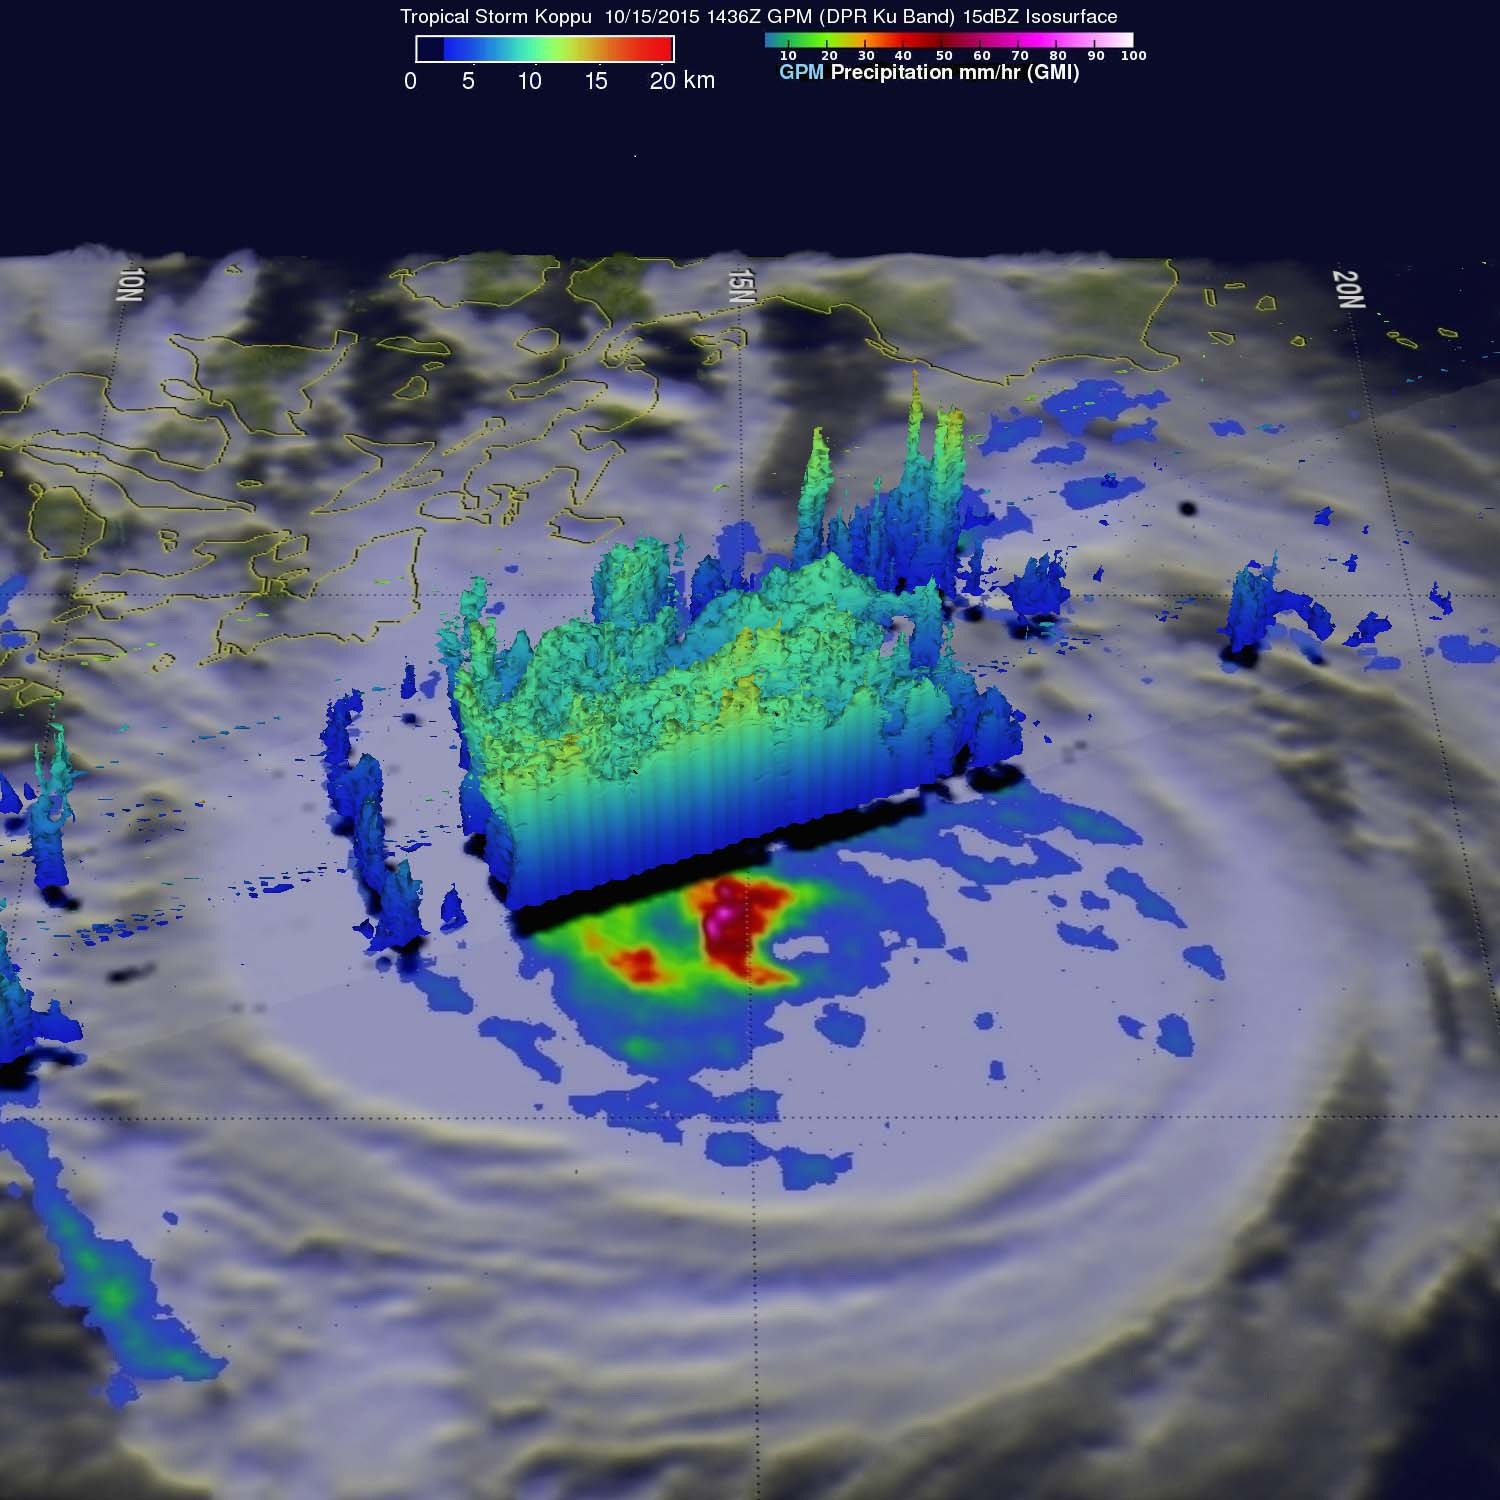 Three days ago, Global Precipitation Measurement witnessed rain falling at a rate of over 133 mm (5.3 inches) per hour in intense convective thunderstorms just southwest of Koppu's centre